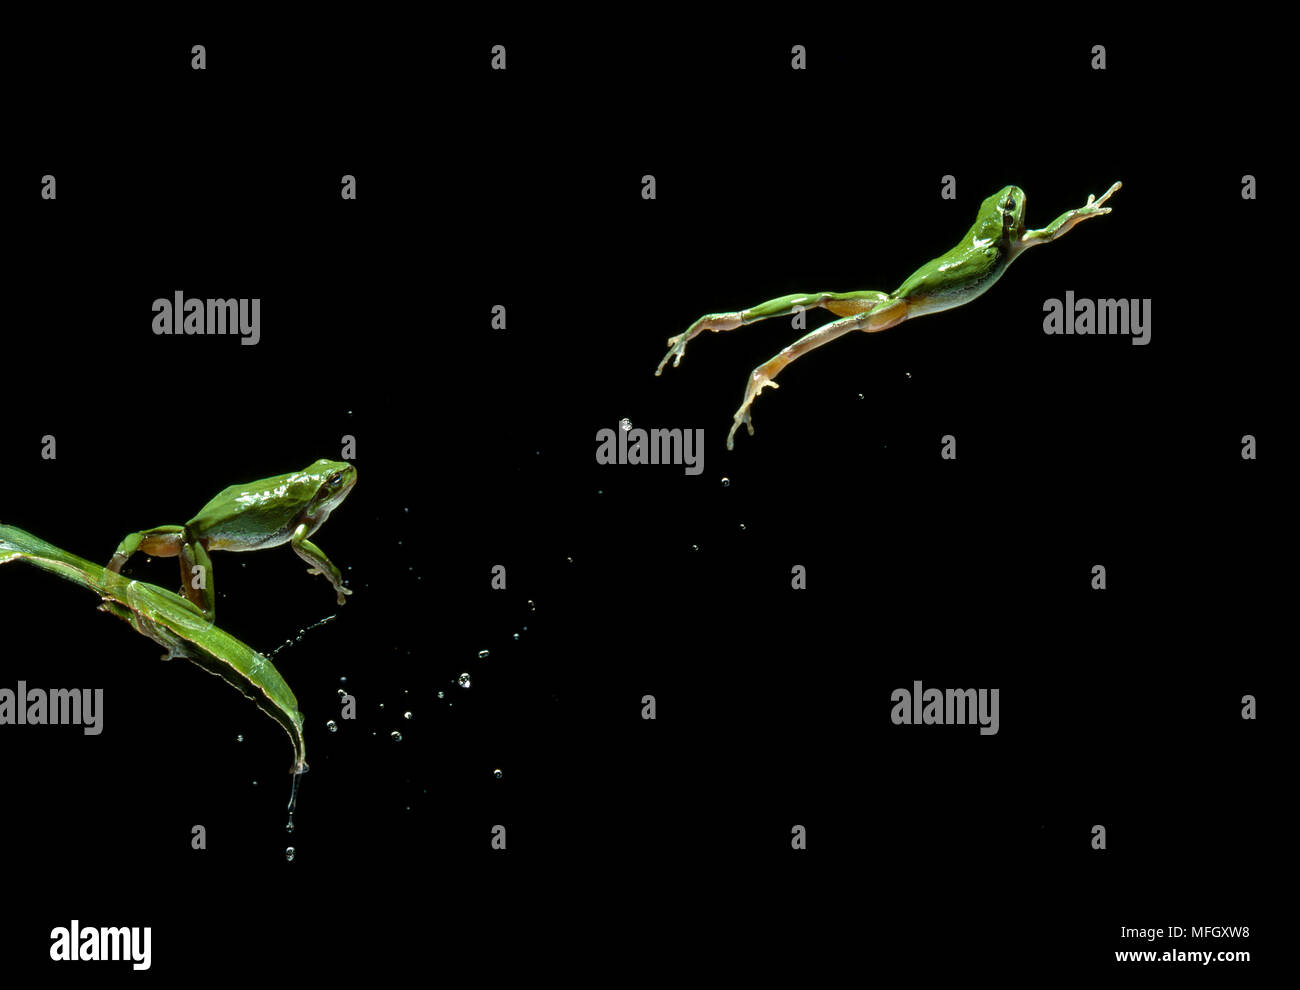 EUROPEAN TREE FROG leaping Hyla arborea  (multiflash, two images) Image carries 50% surcharge Stock Photo